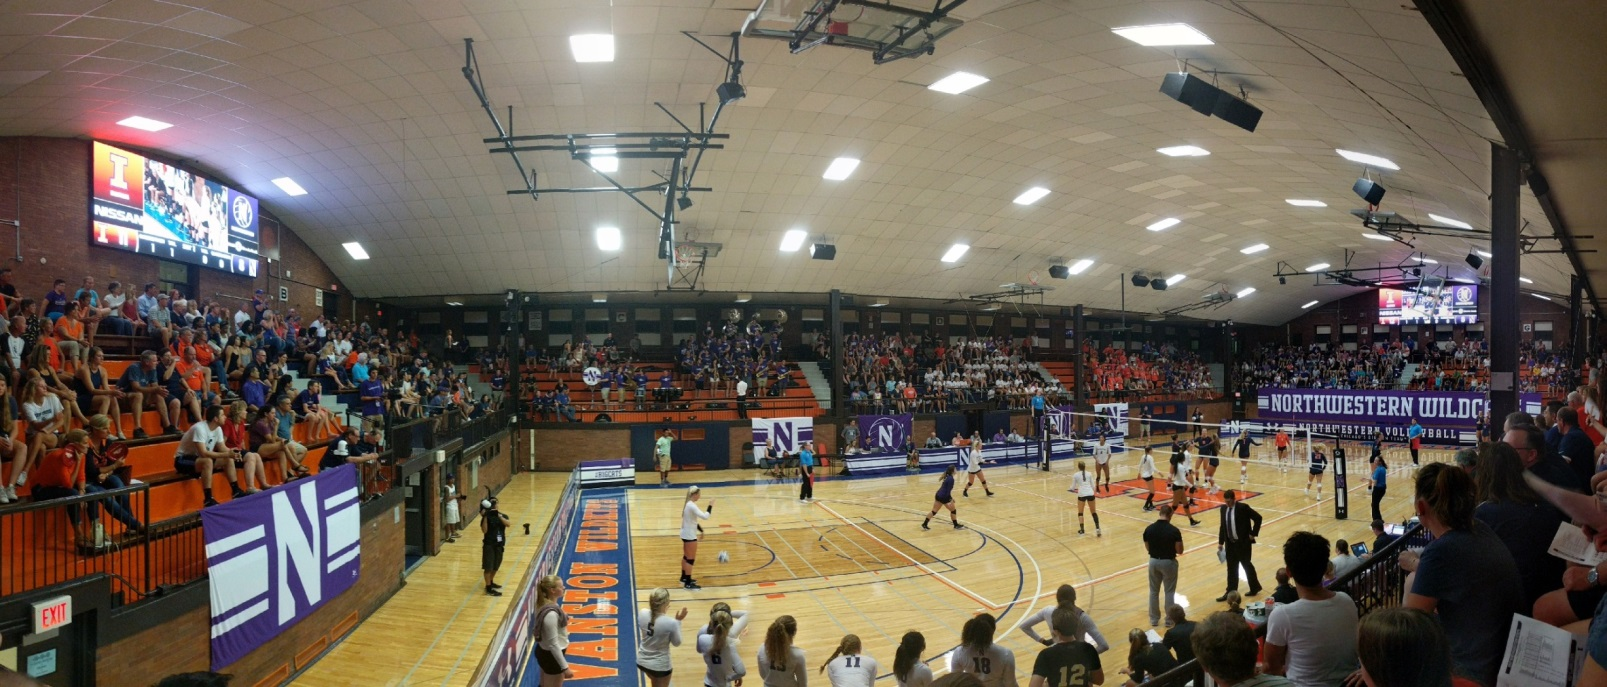 Panaramic view of a high school gym where a basketball game is being played